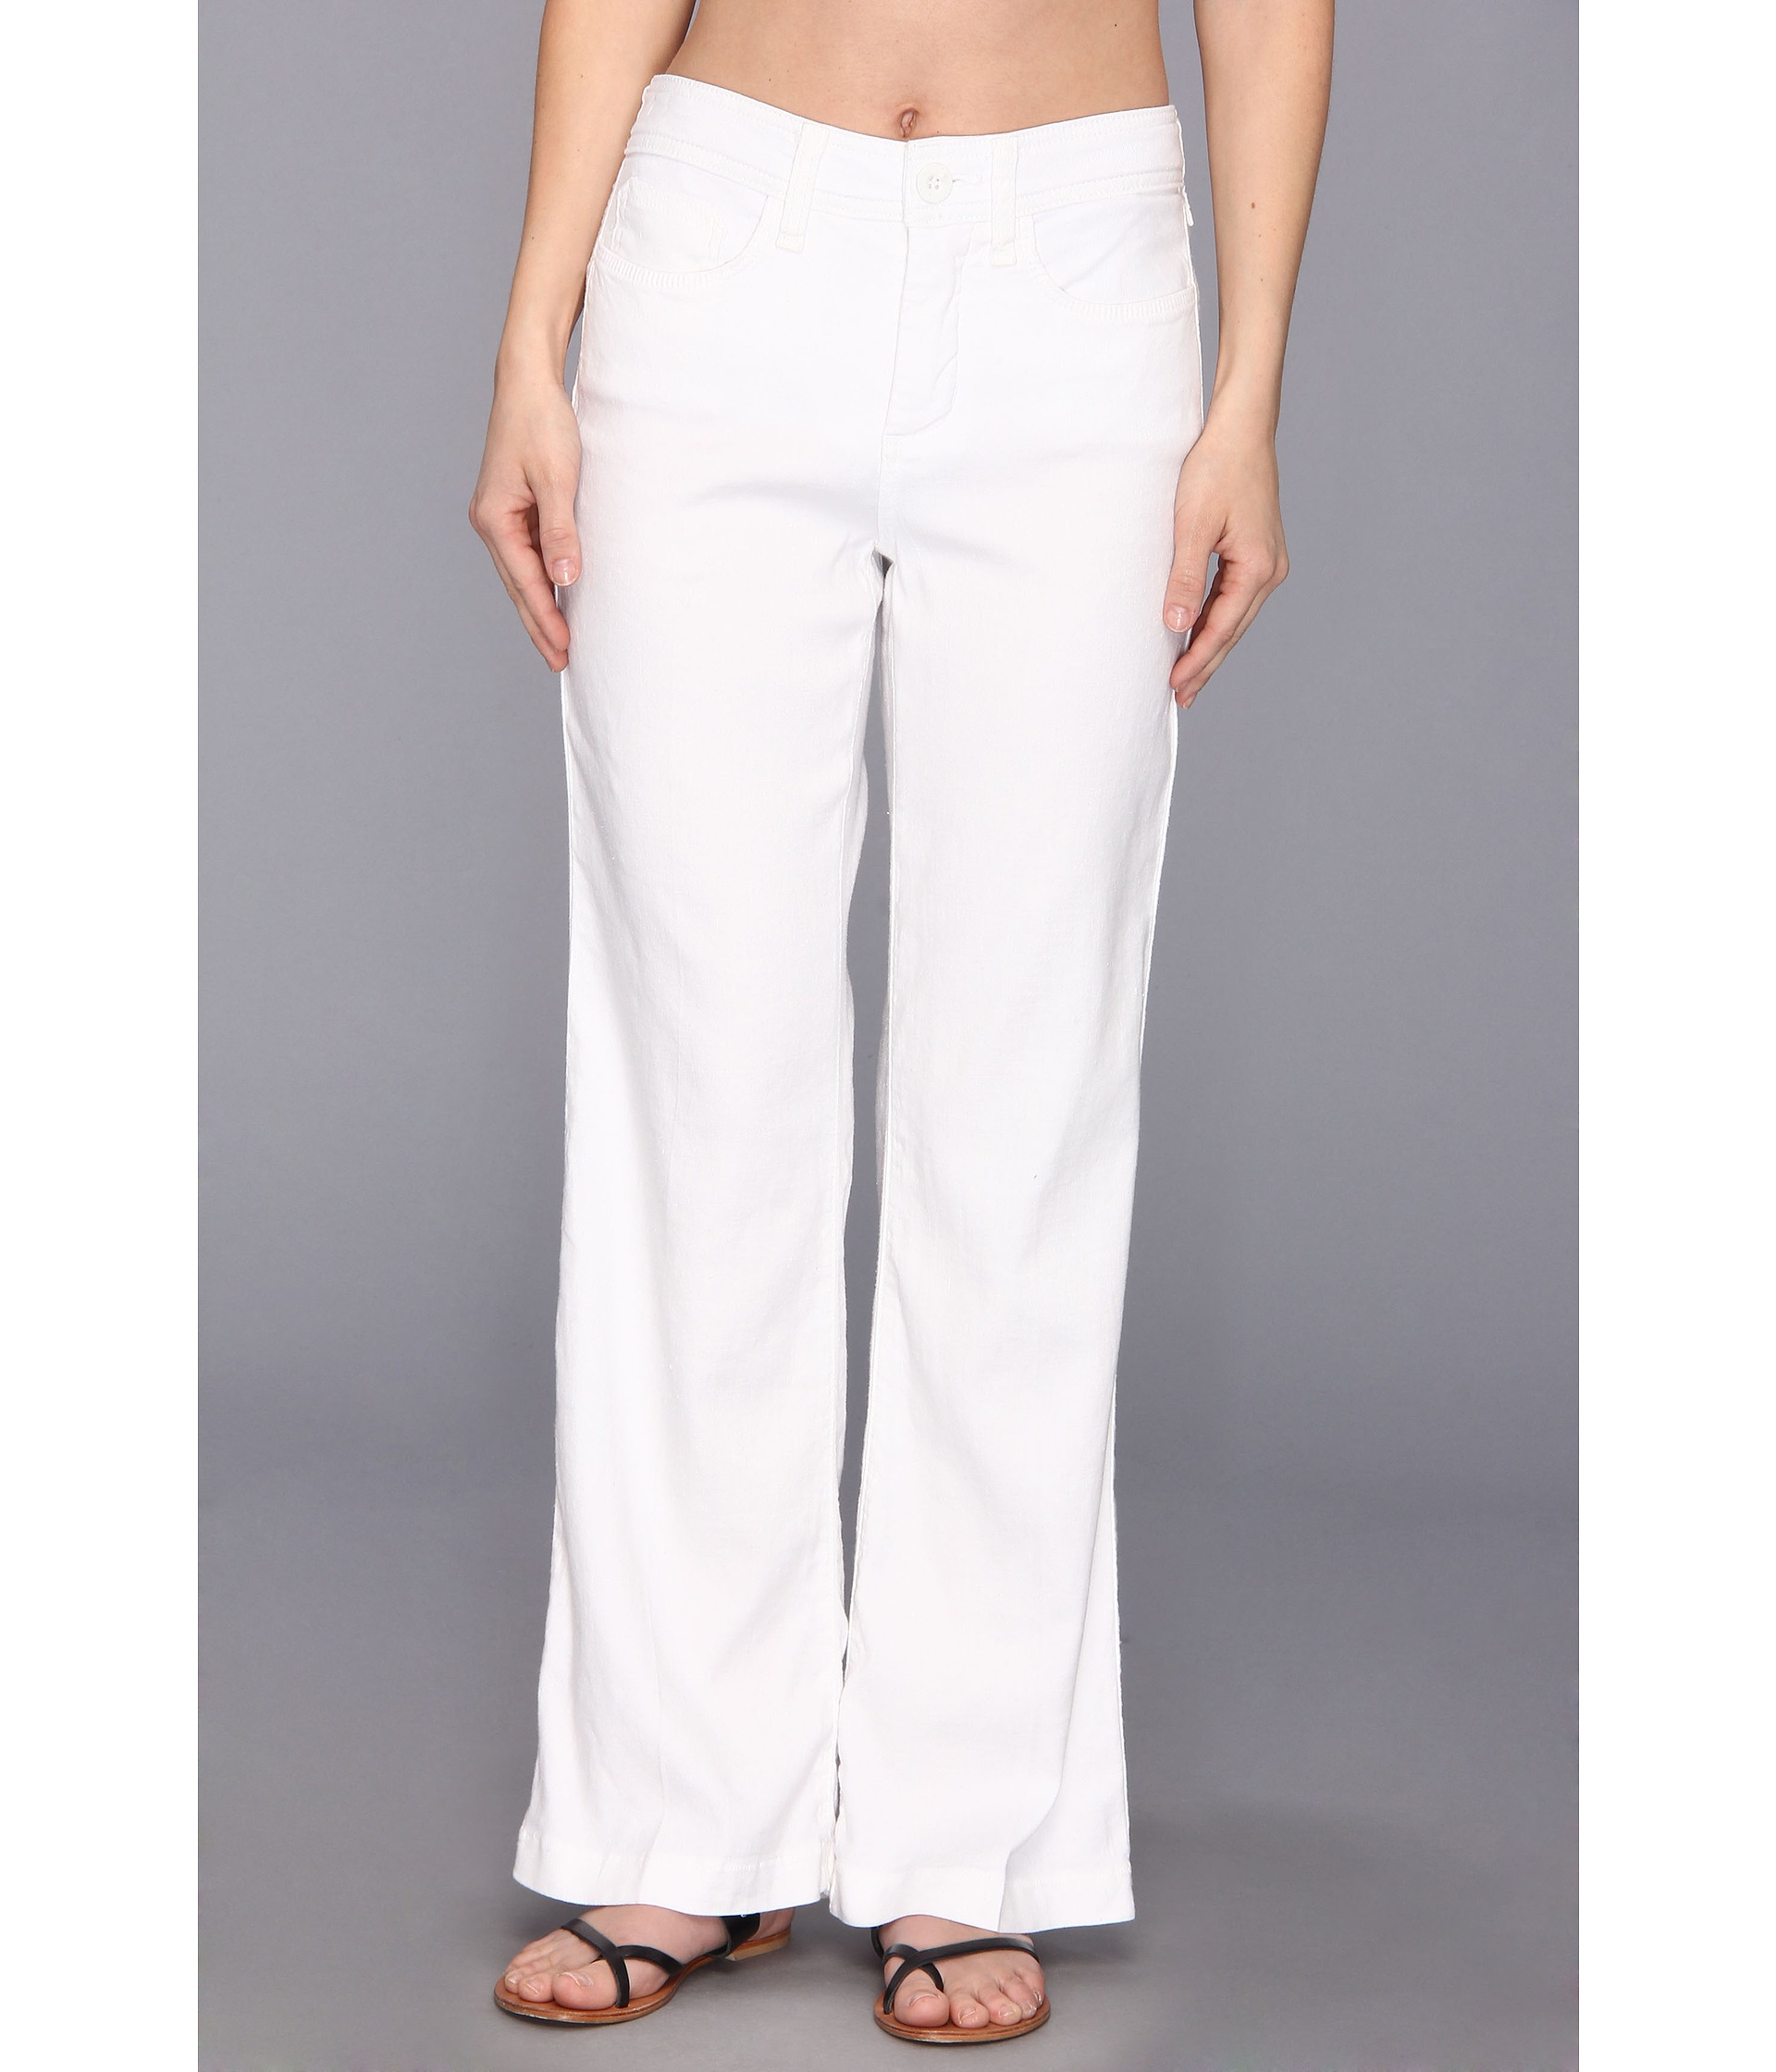 Find womens linen pants at Macy's Macy's Presents: The Edit - A curated mix of fashion and inspiration Check It Out Free Shipping with $75 purchase + Free Store Pickup.